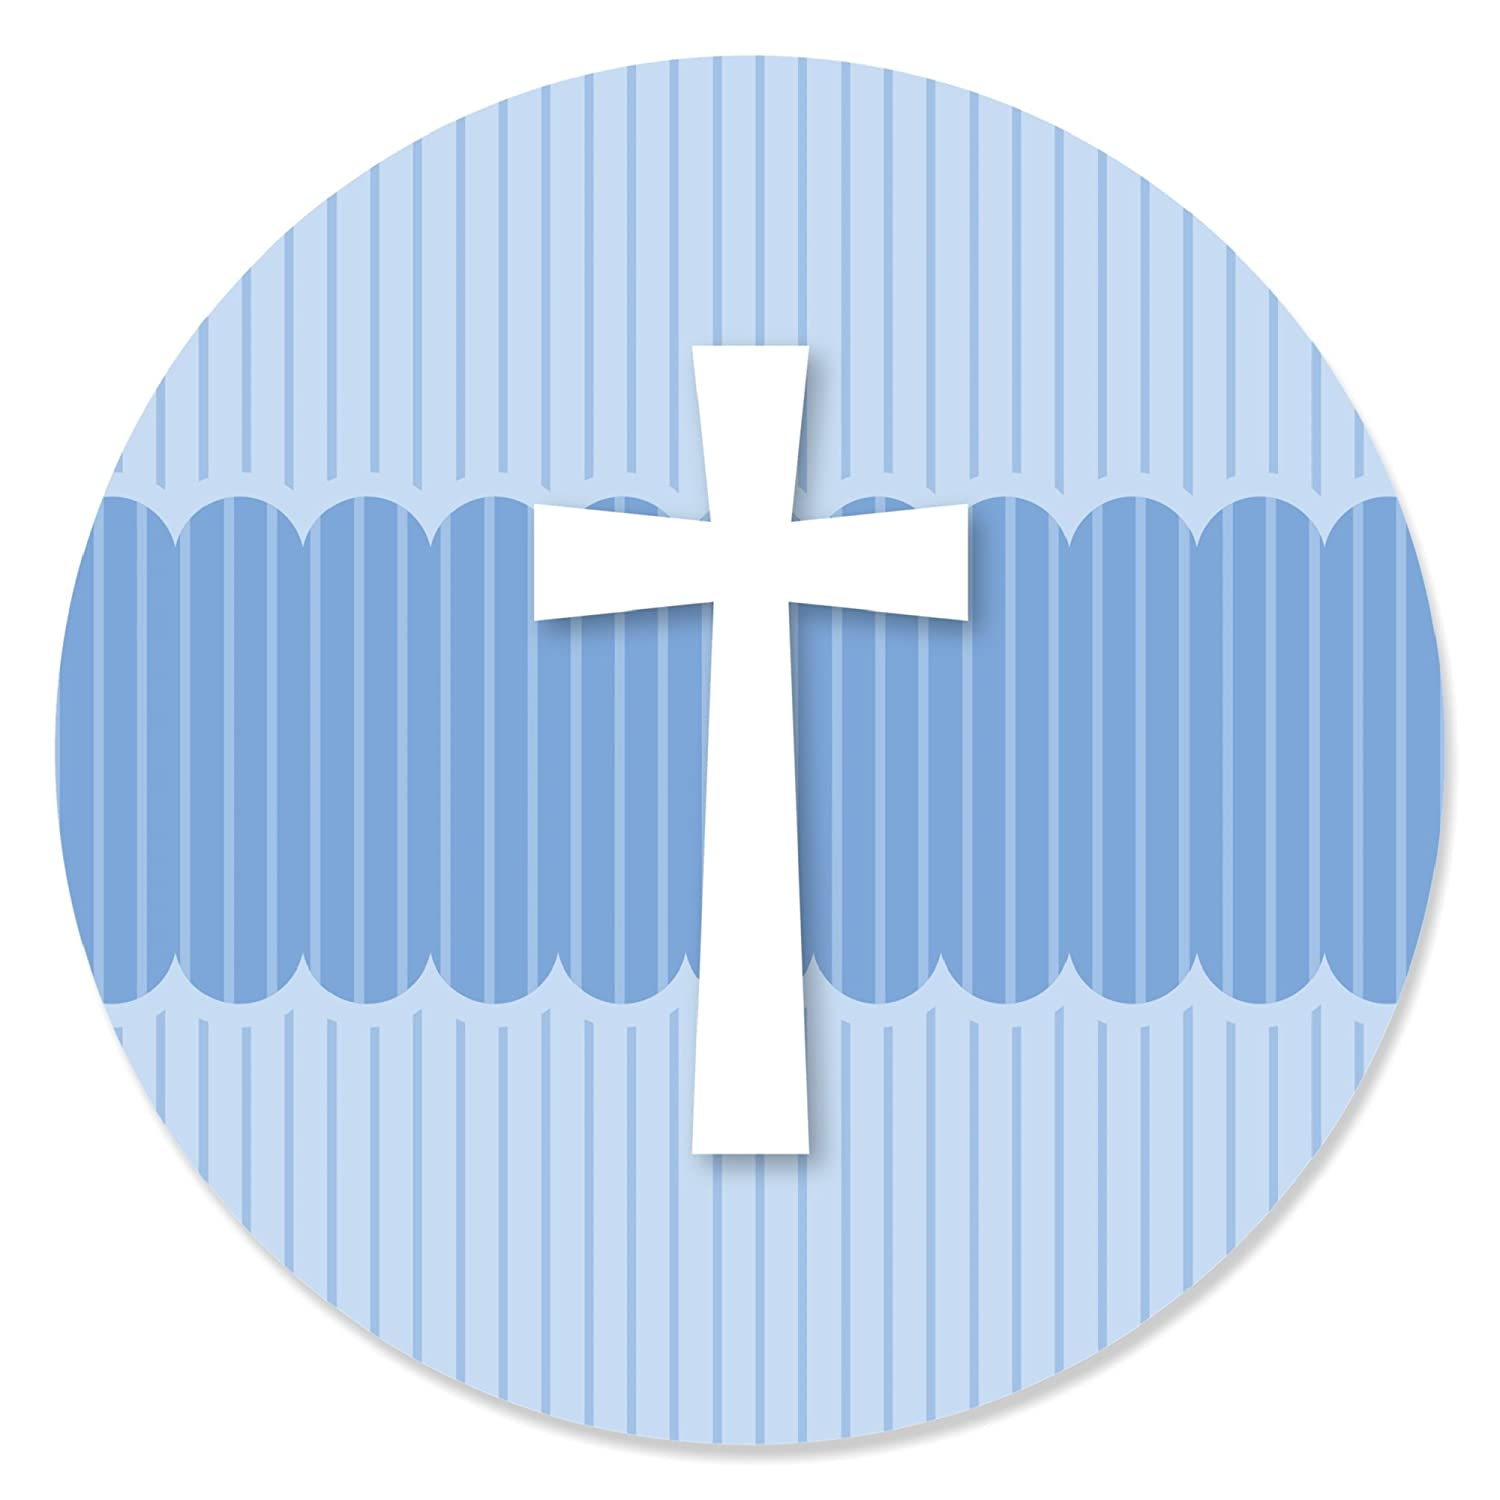 Amazon delicate blue cross baptism party circle sticker amazon delicate blue cross baptism party circle sticker labels 24 count kitchen dining buycottarizona